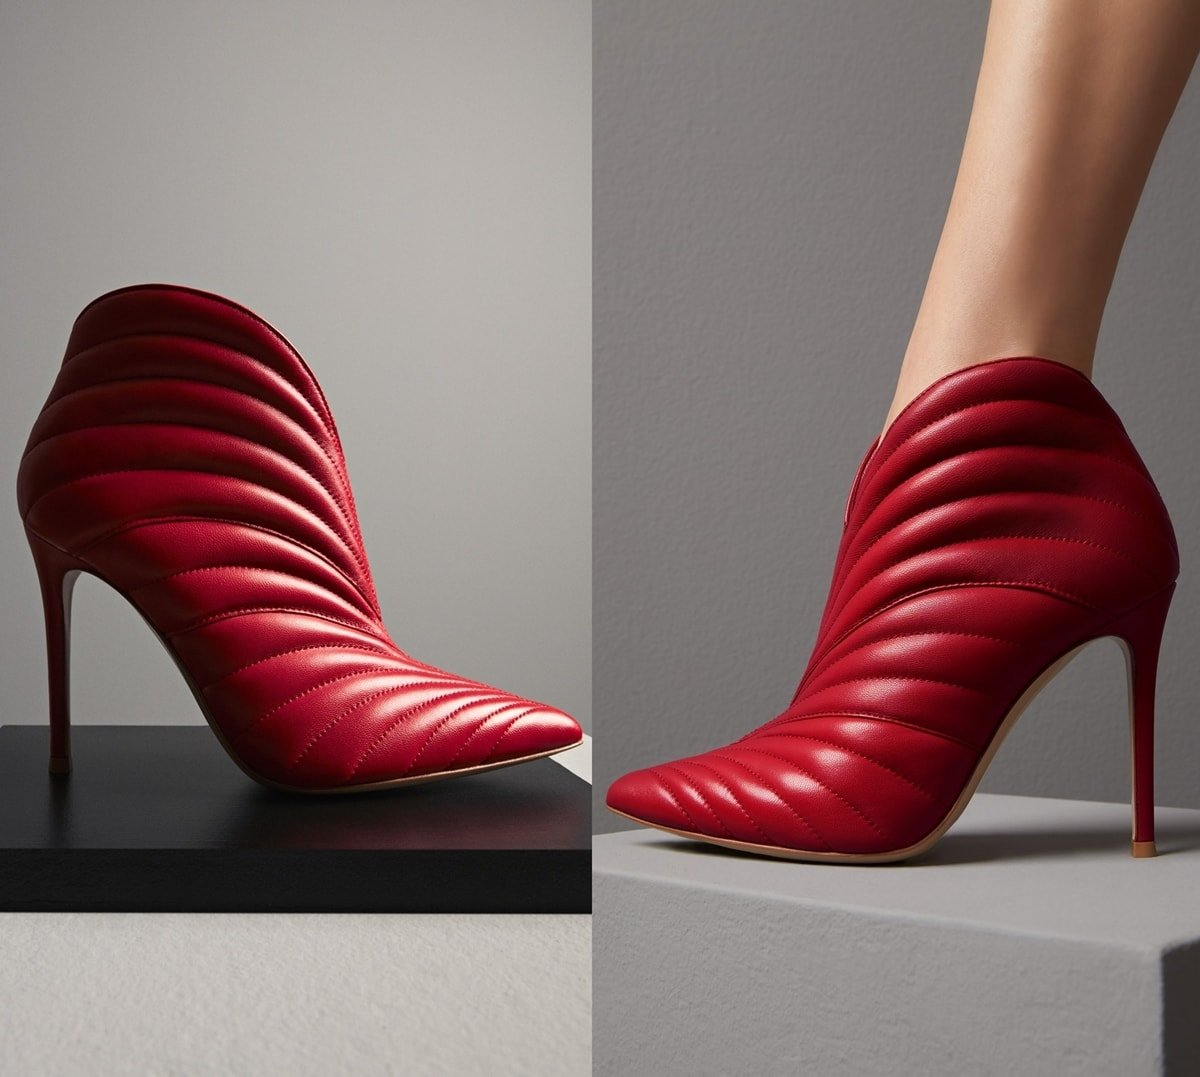 These red Eiko boots feature a glossy finish, pointed toe, and slender stiletto heel